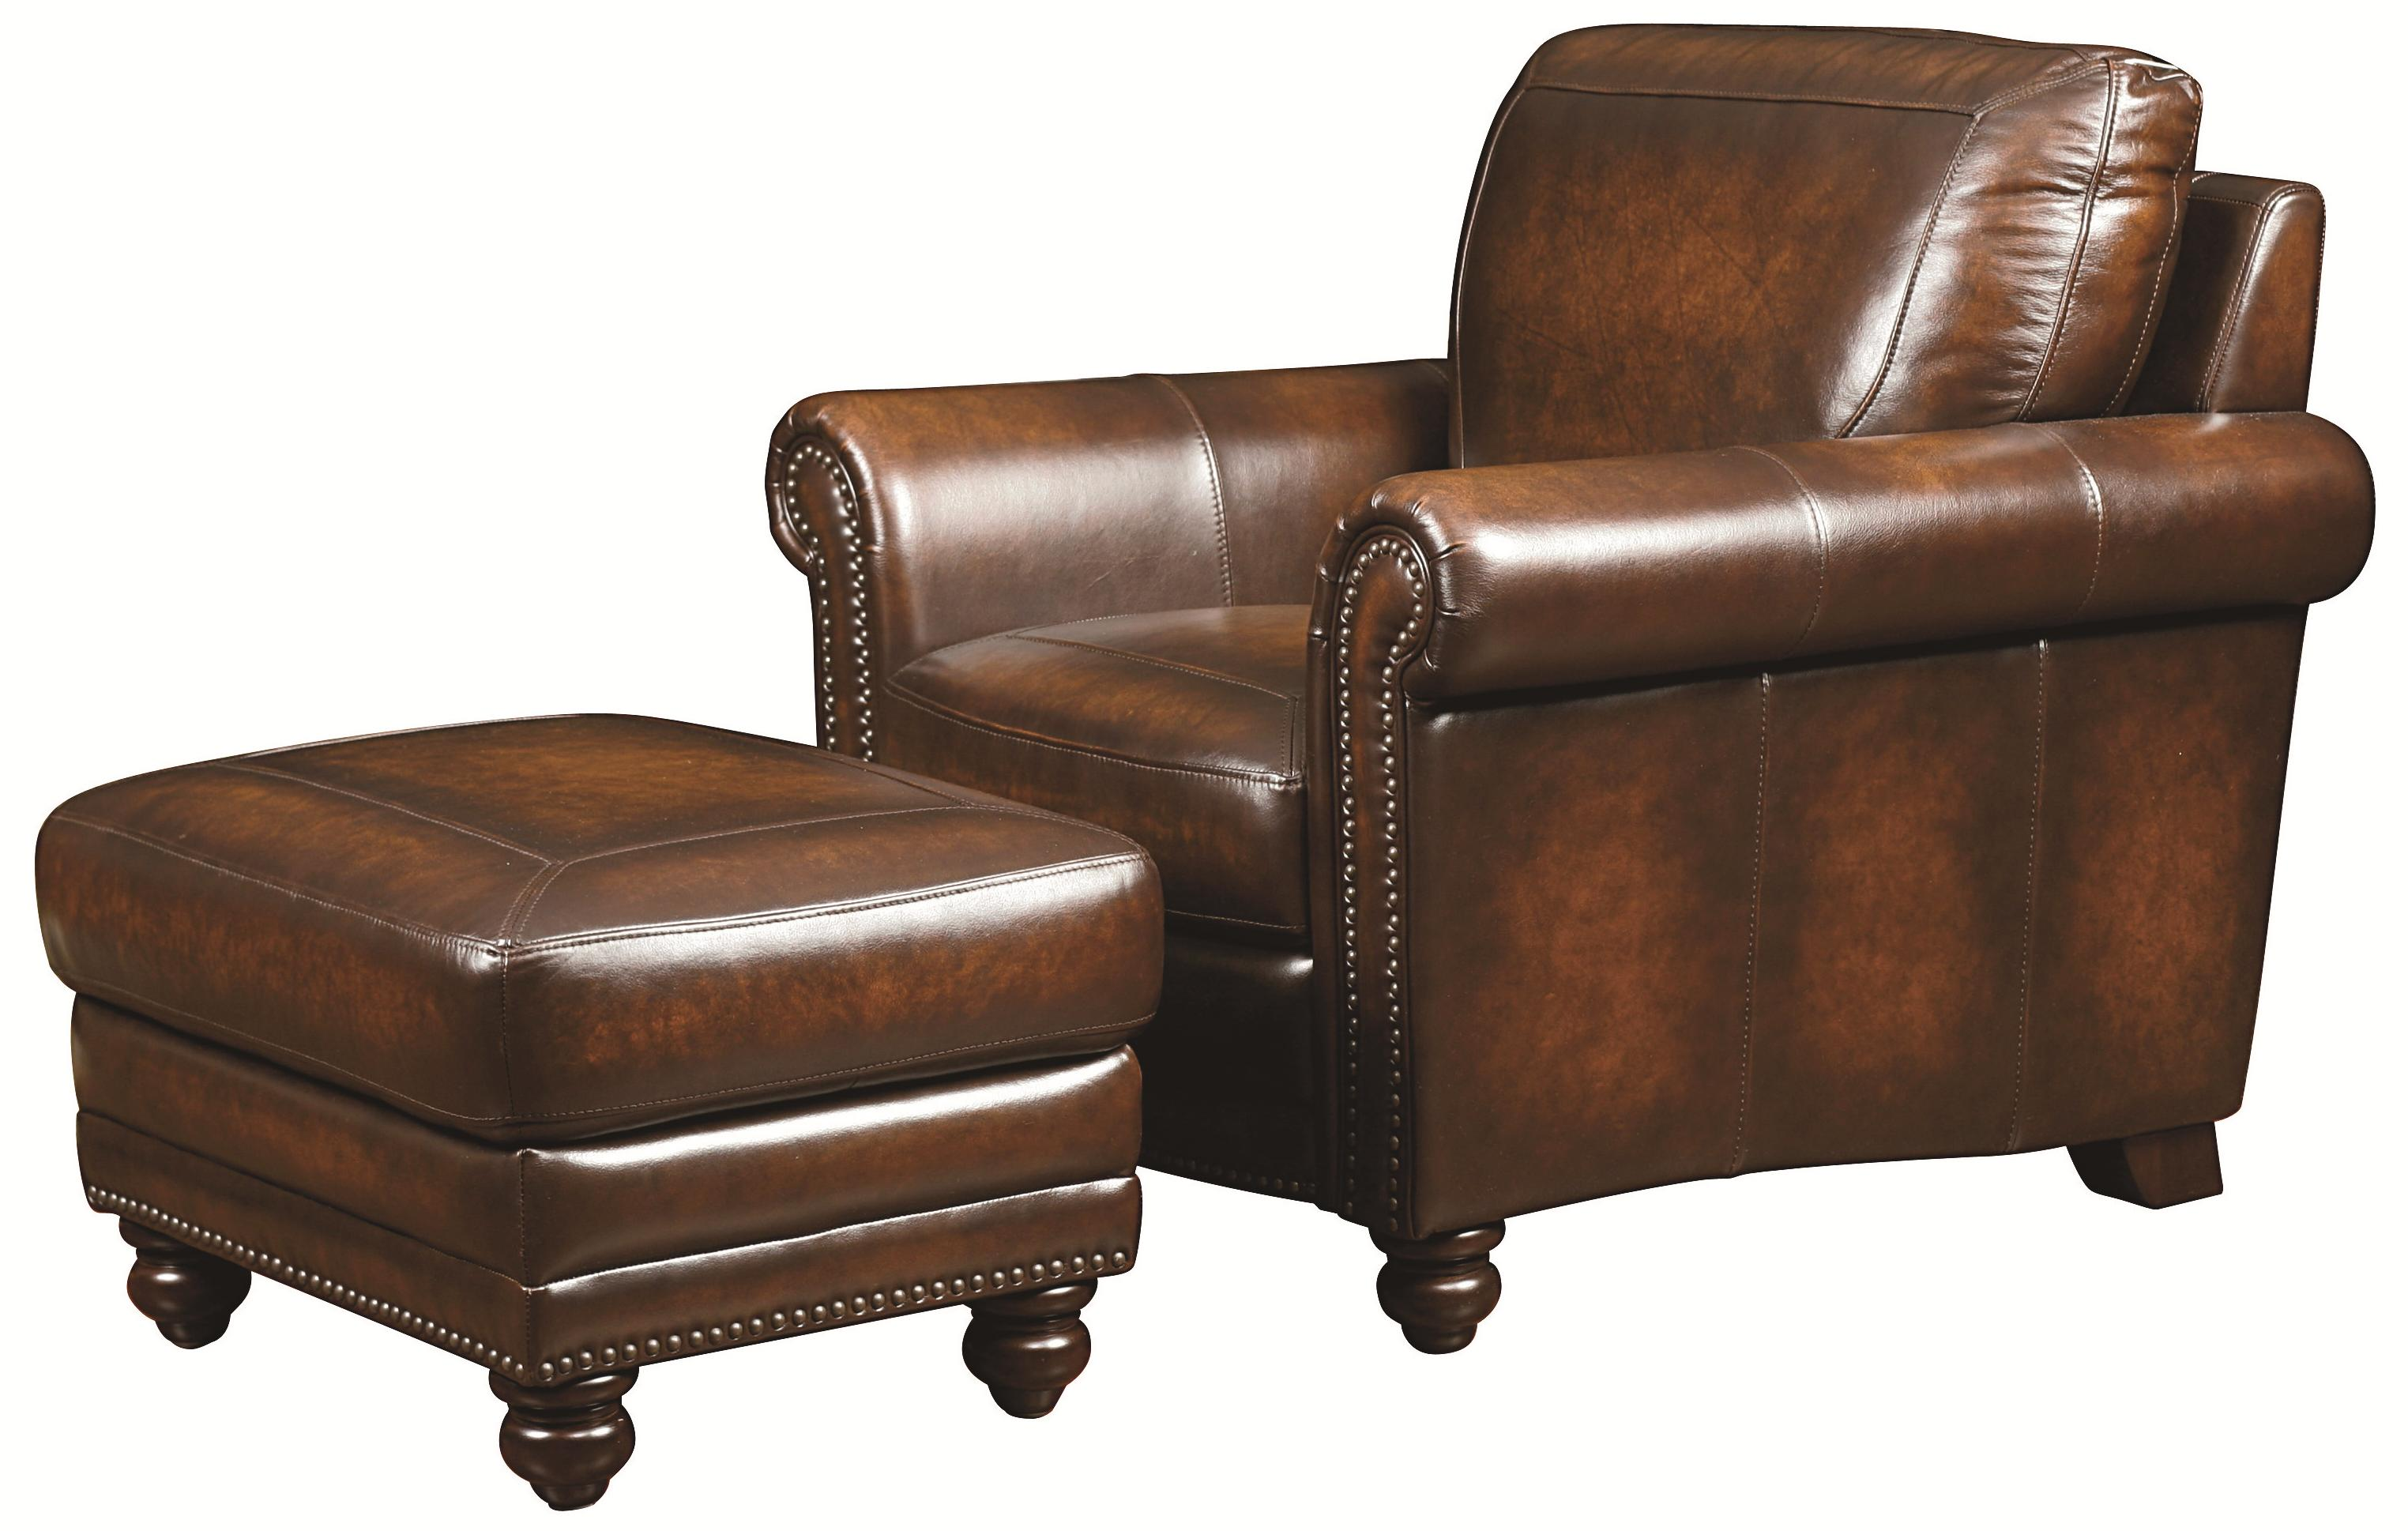 Leather Chairs With Ottoman Hamilton Traditional Leather Chair And Ottoman With Nail Head Trim By Bassett At Virginia Furniture Market